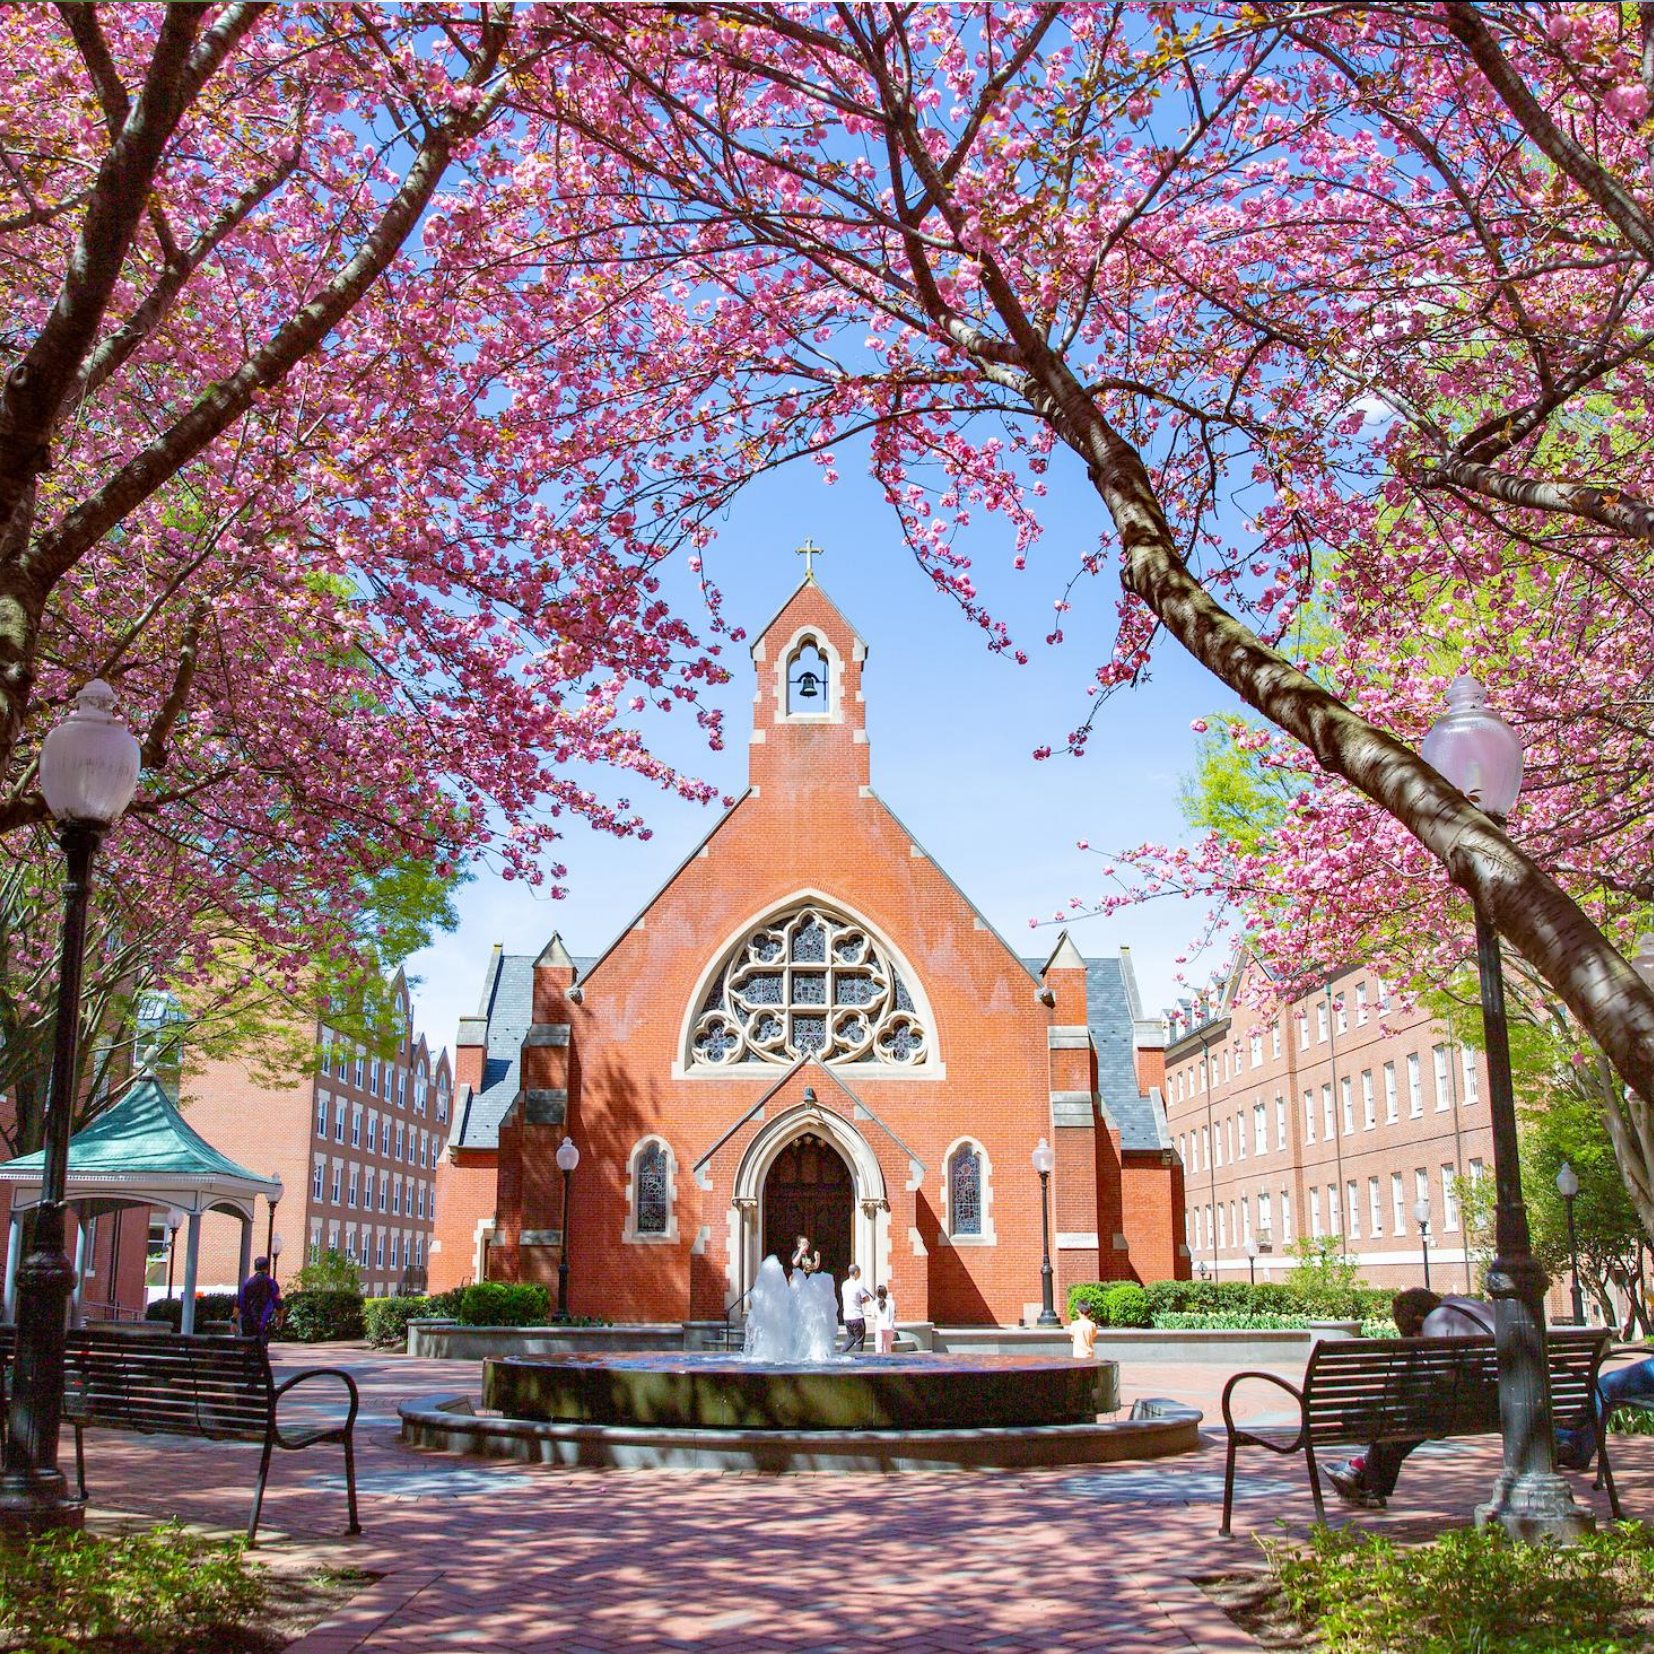 Image of Georgetown campus